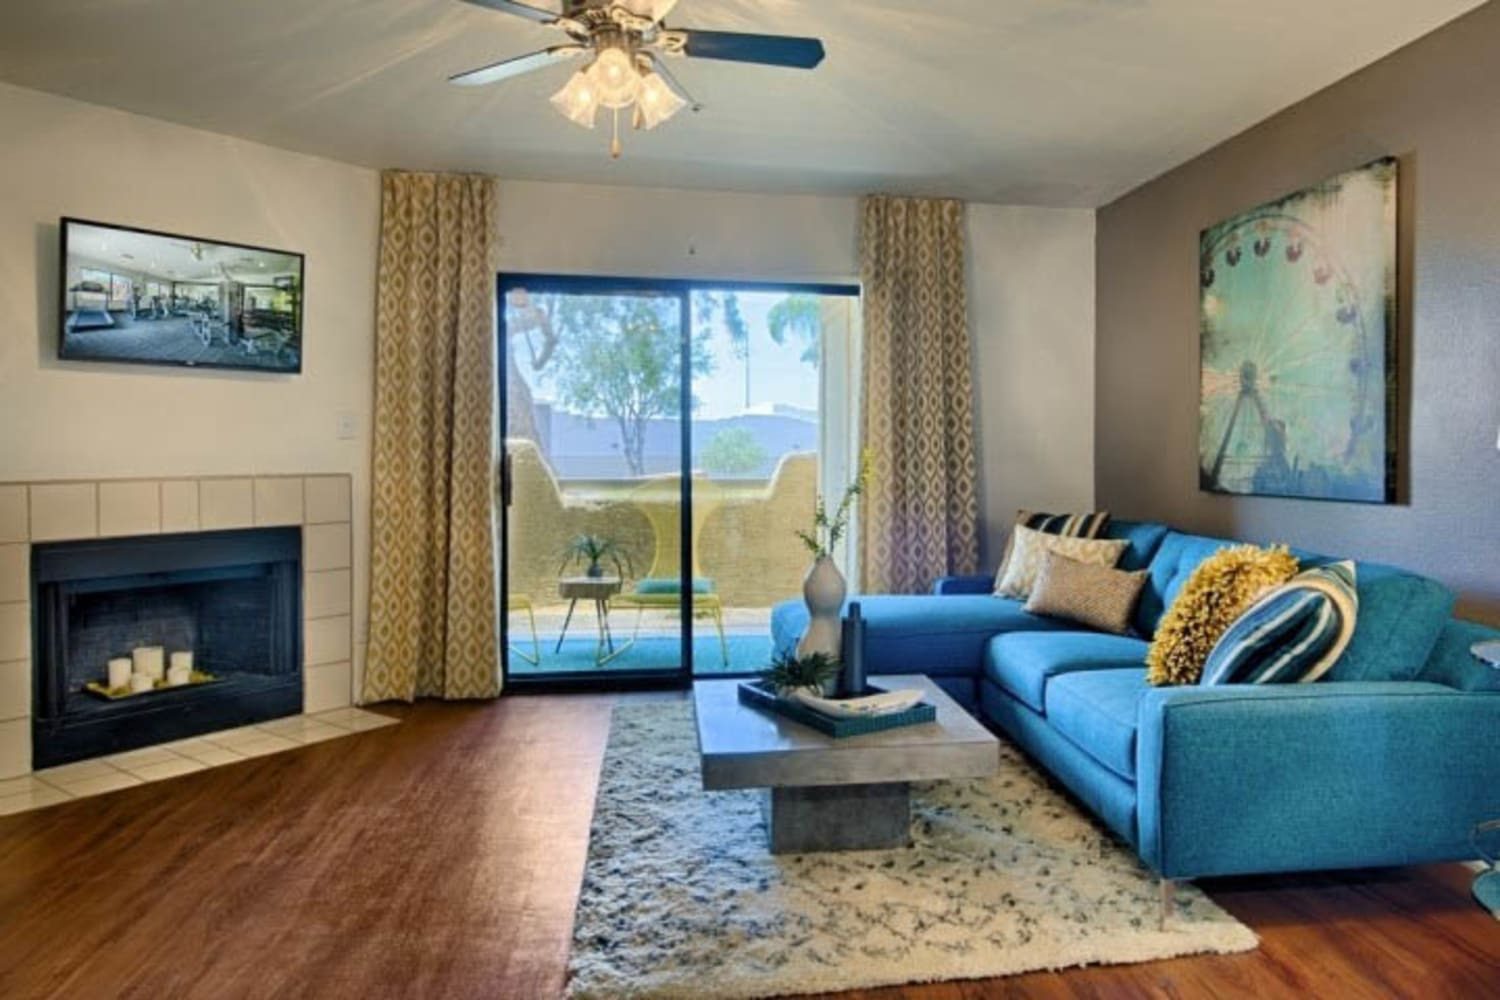 Living room at Cabrillo Apartments in Scottsdale, Arizona